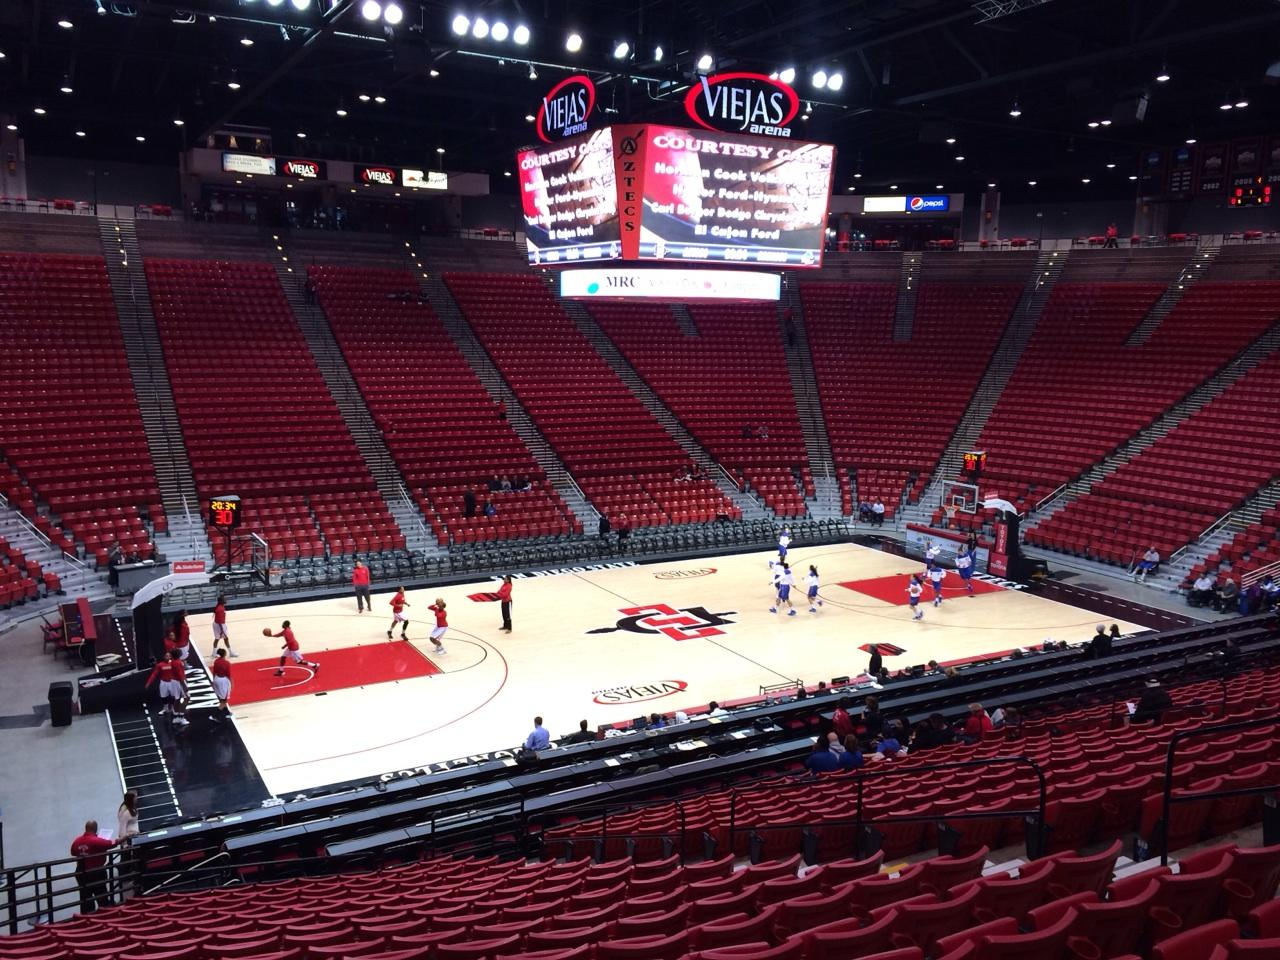 Viejas Arena Section P Row 23 Seat 12